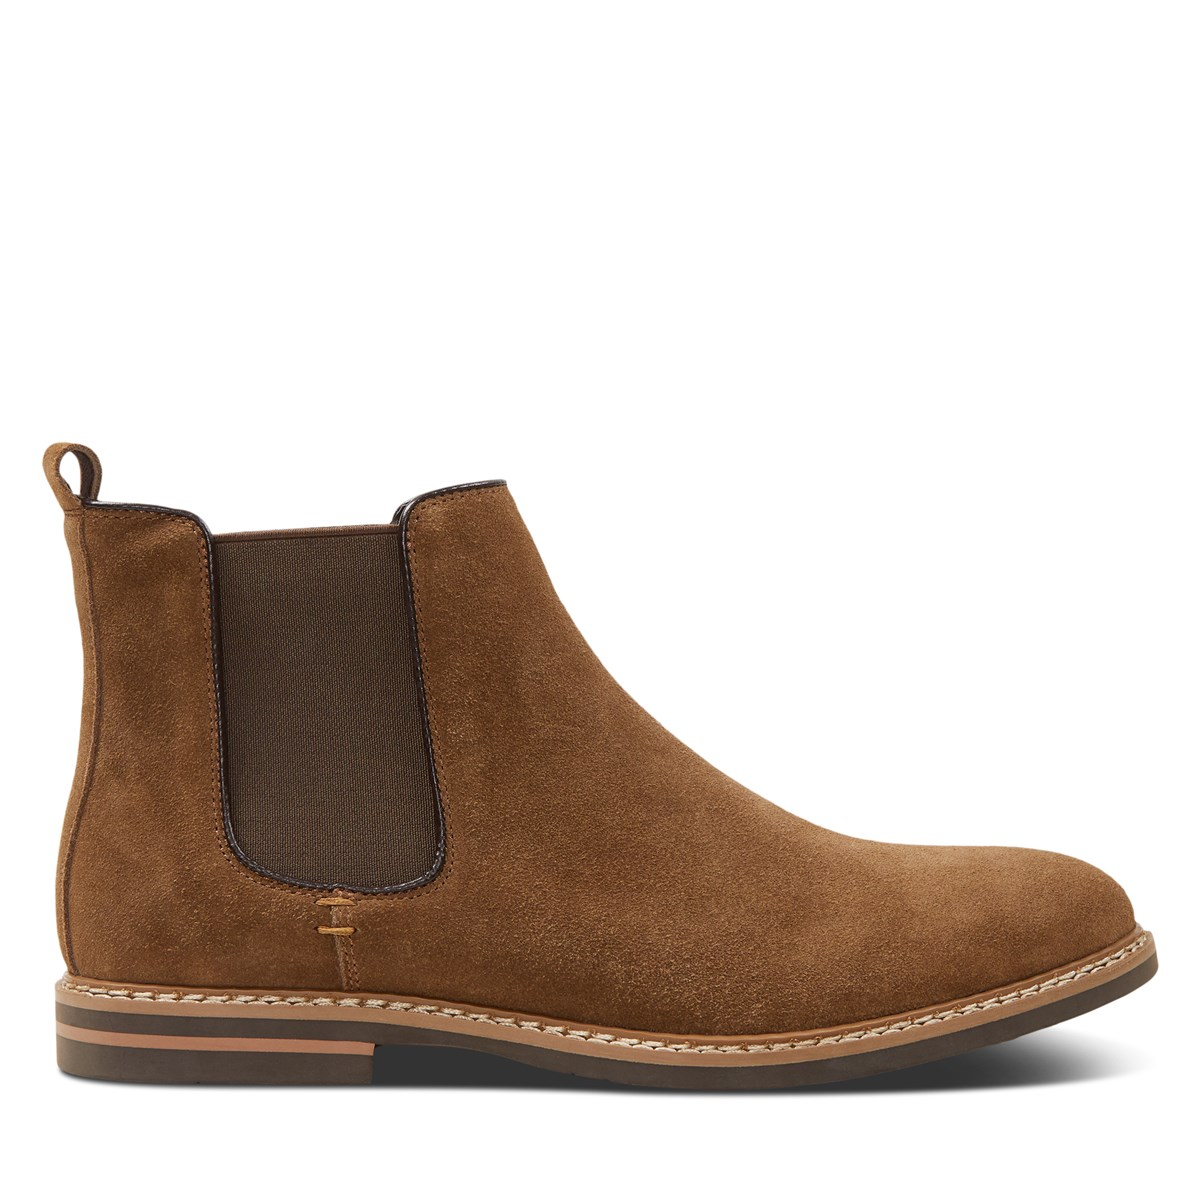 Men's Lucas Chelsea Boots in Tobacco